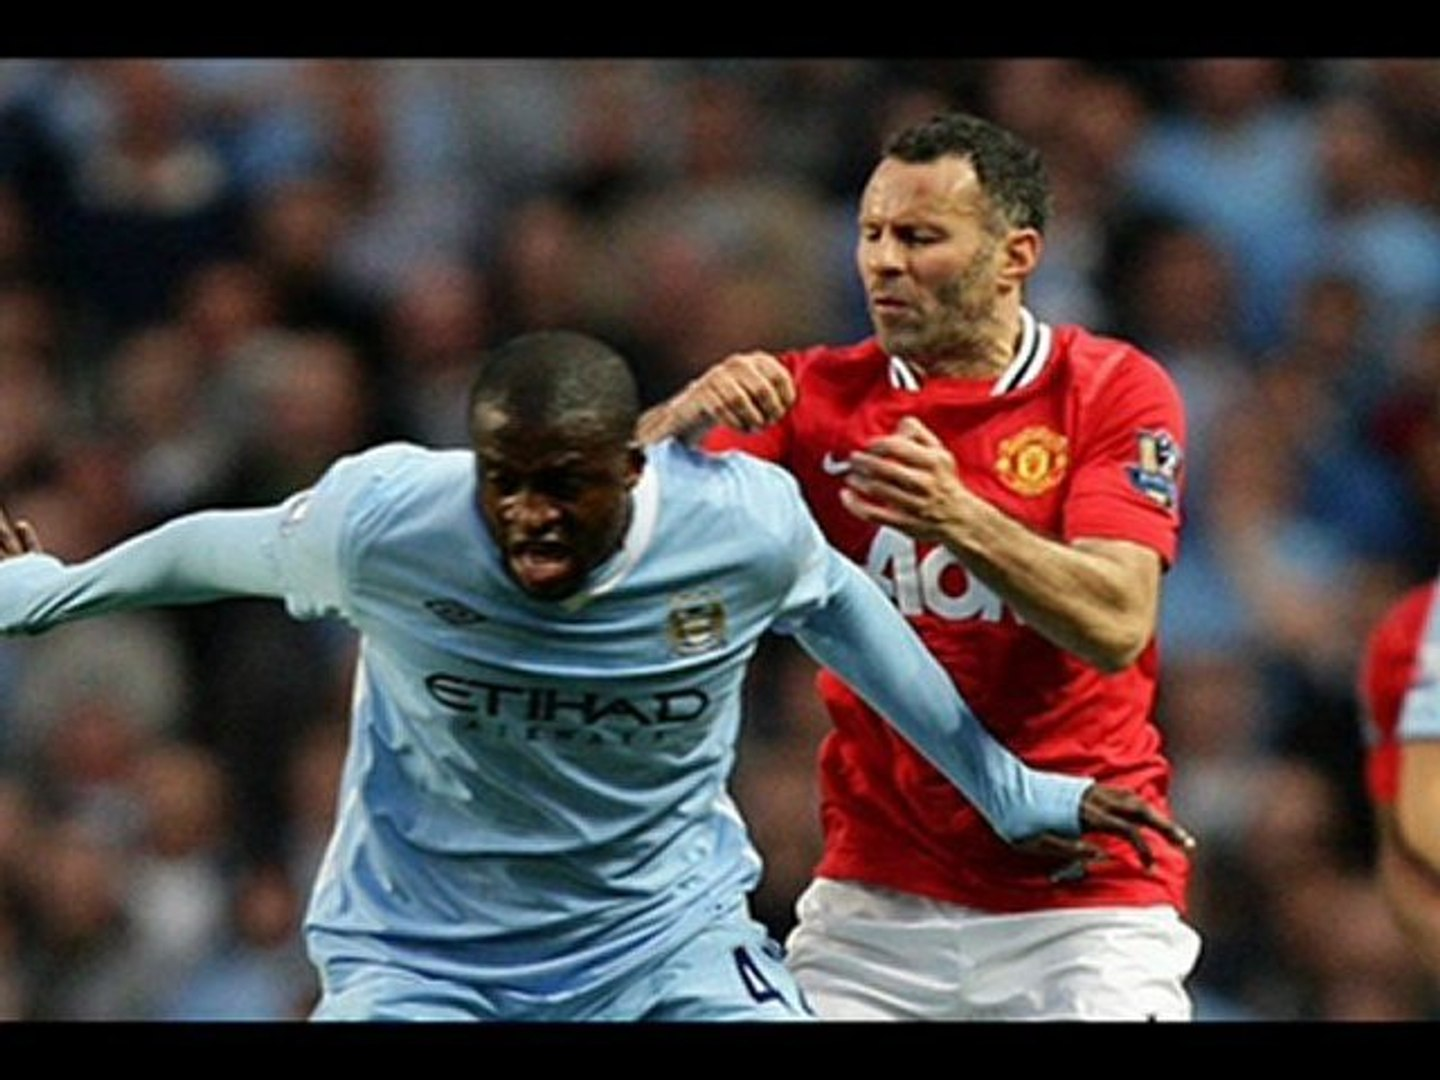 Manchester City vs. Manchester United Live Stream Online 9th December 2012